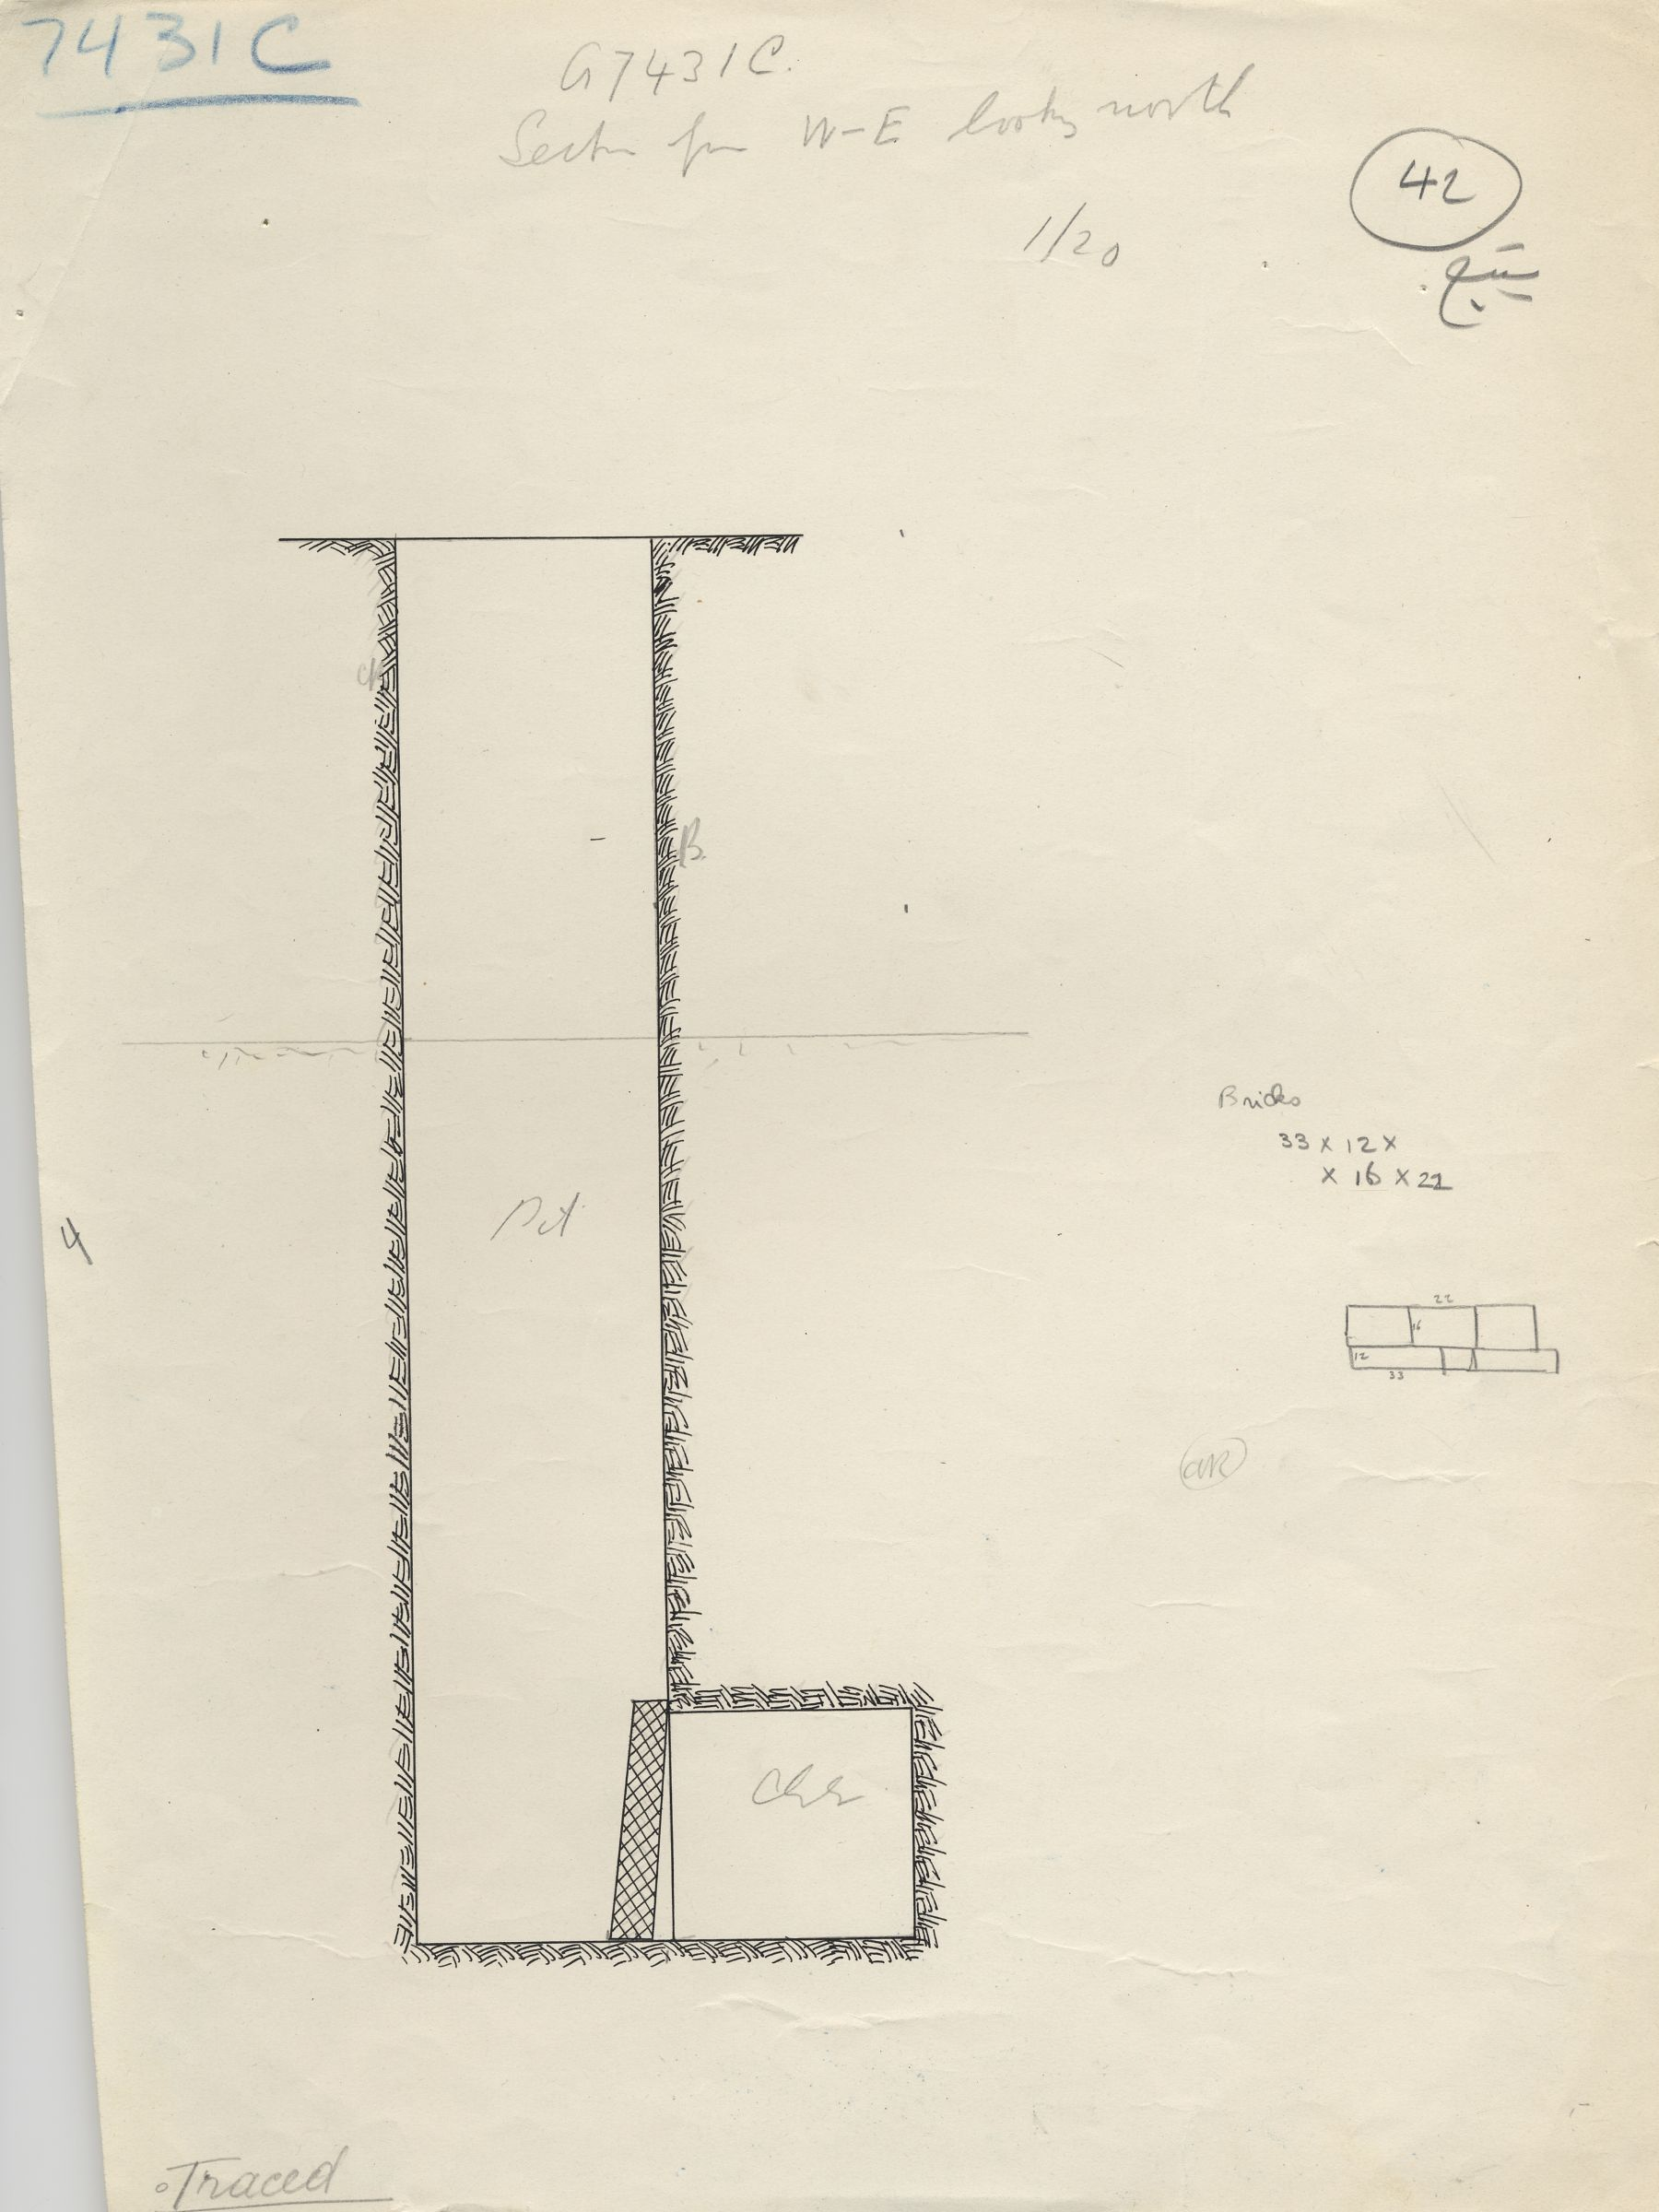 Maps and plans: G 7431, Shaft C